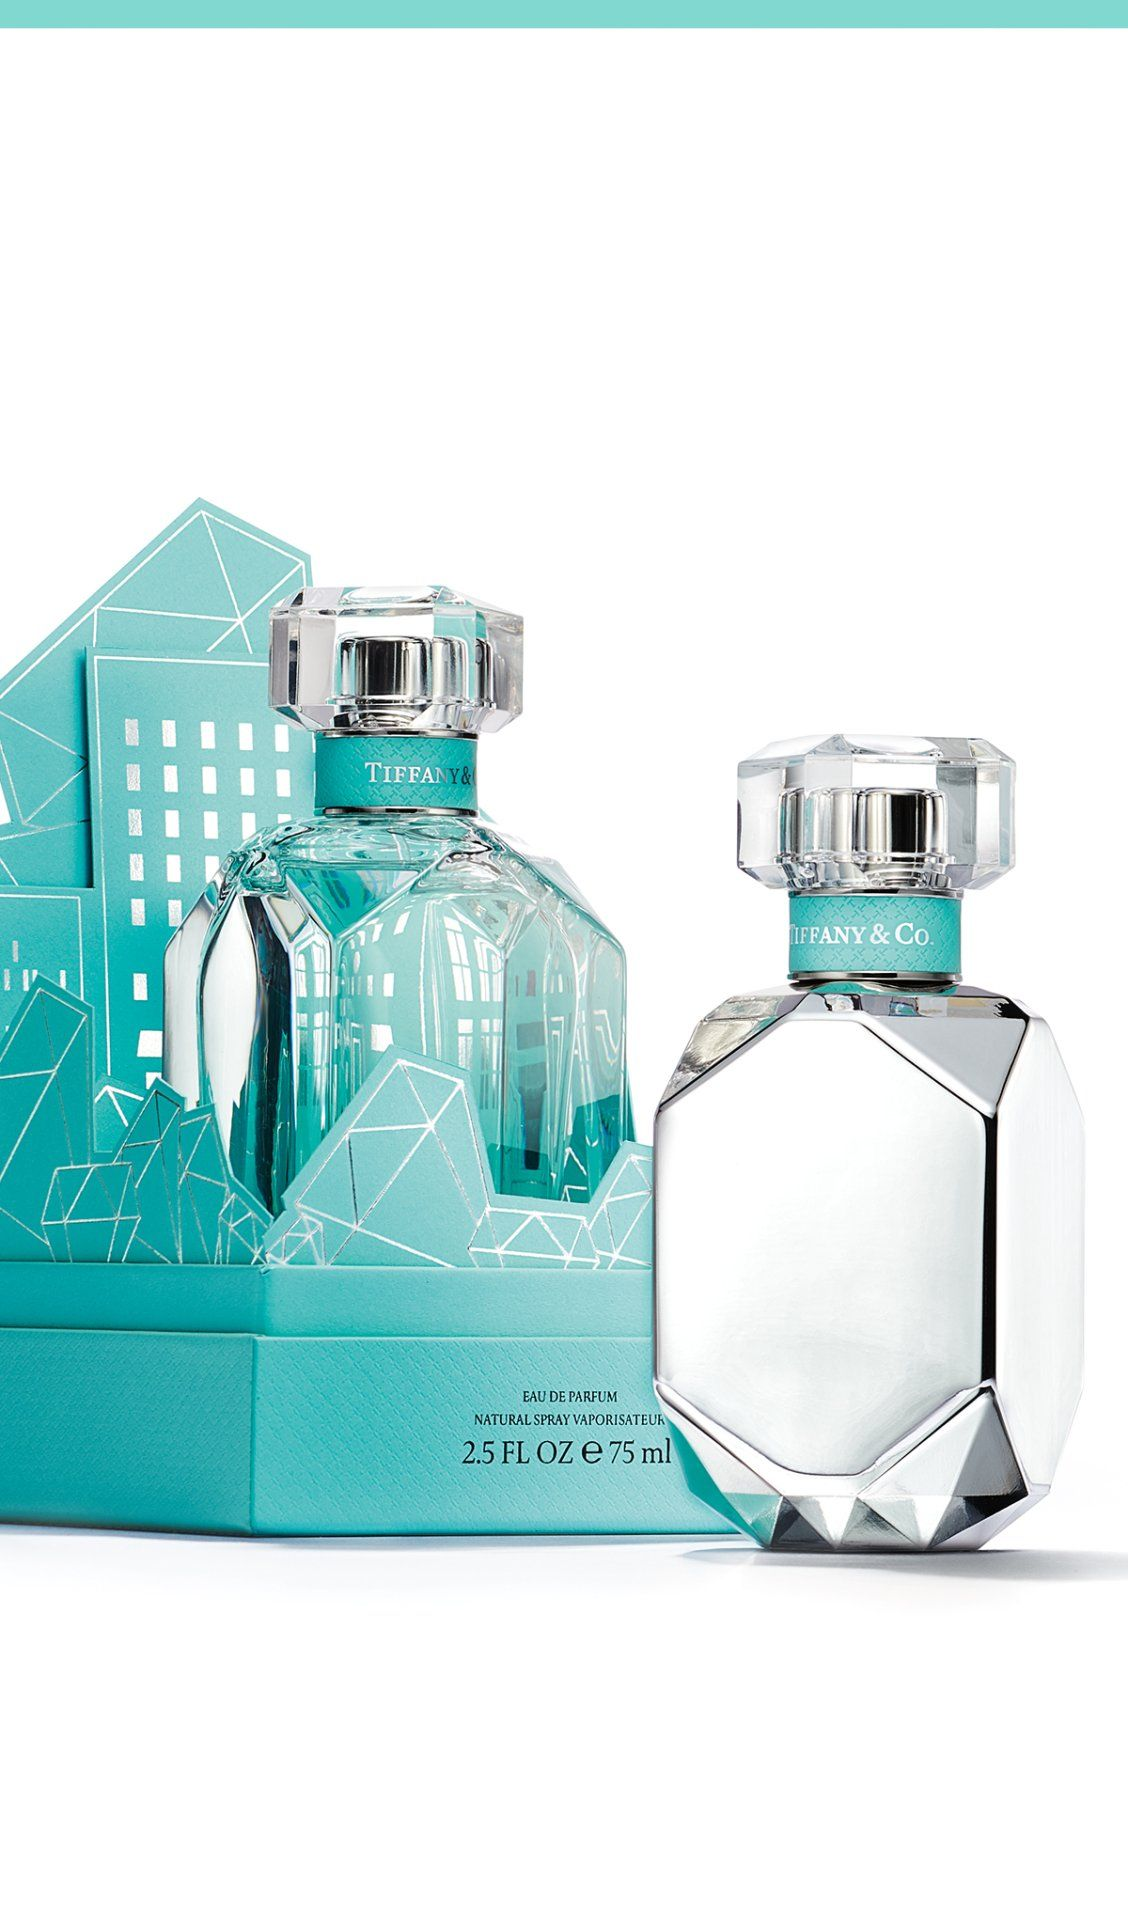 Parfum Diamantform Tiffany Eau De Parfum Intense In 2019 Stuff Blue Perfume